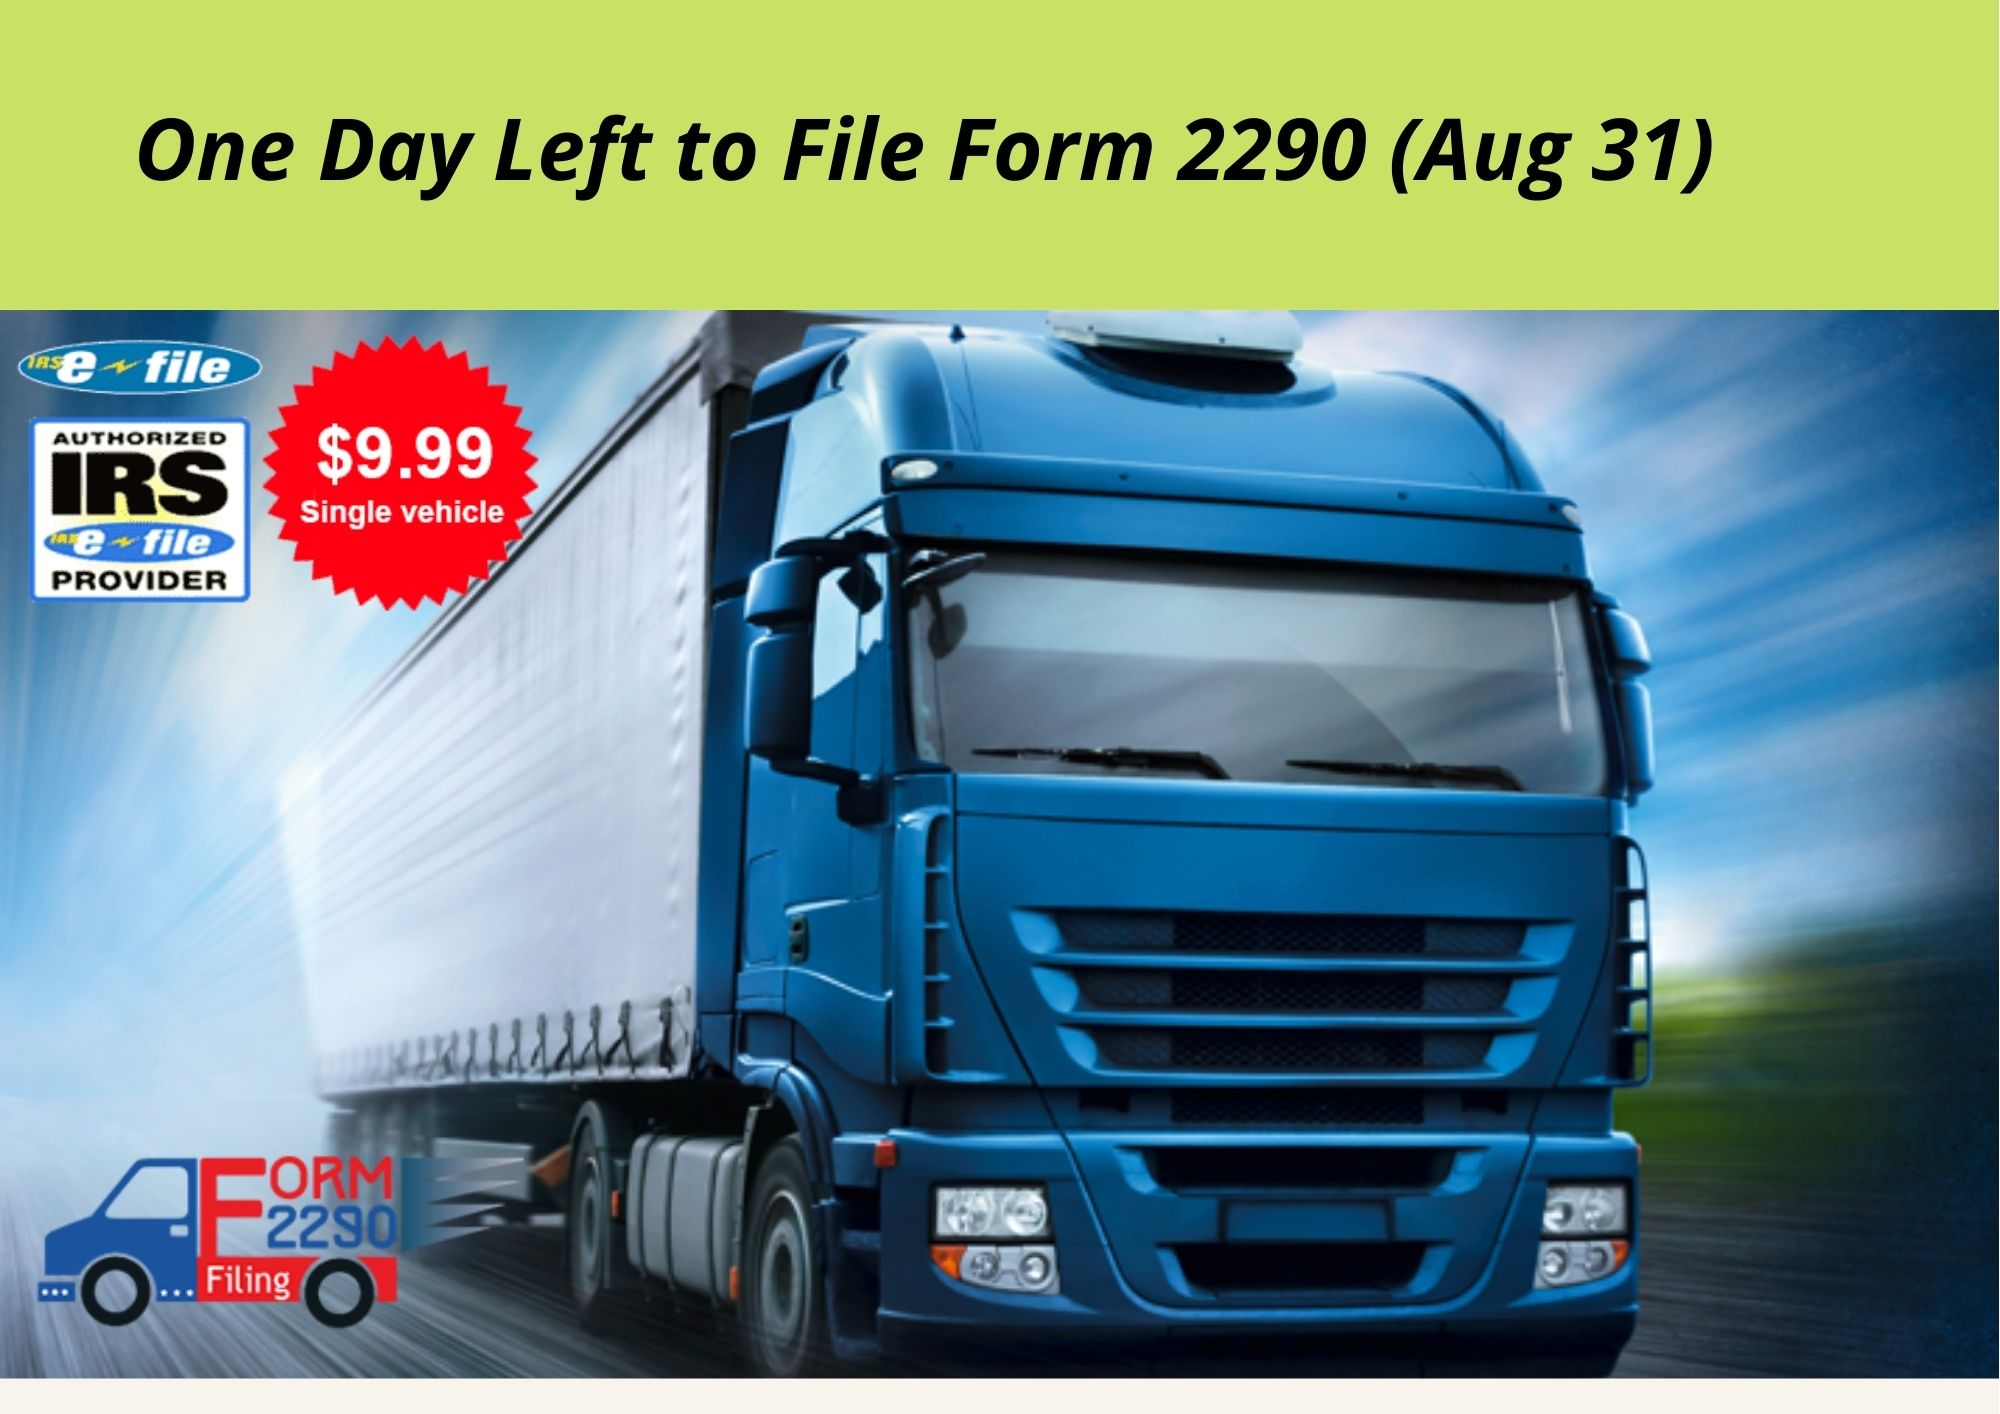 One-Day-Left-to-File-Form-2290-Aug-31